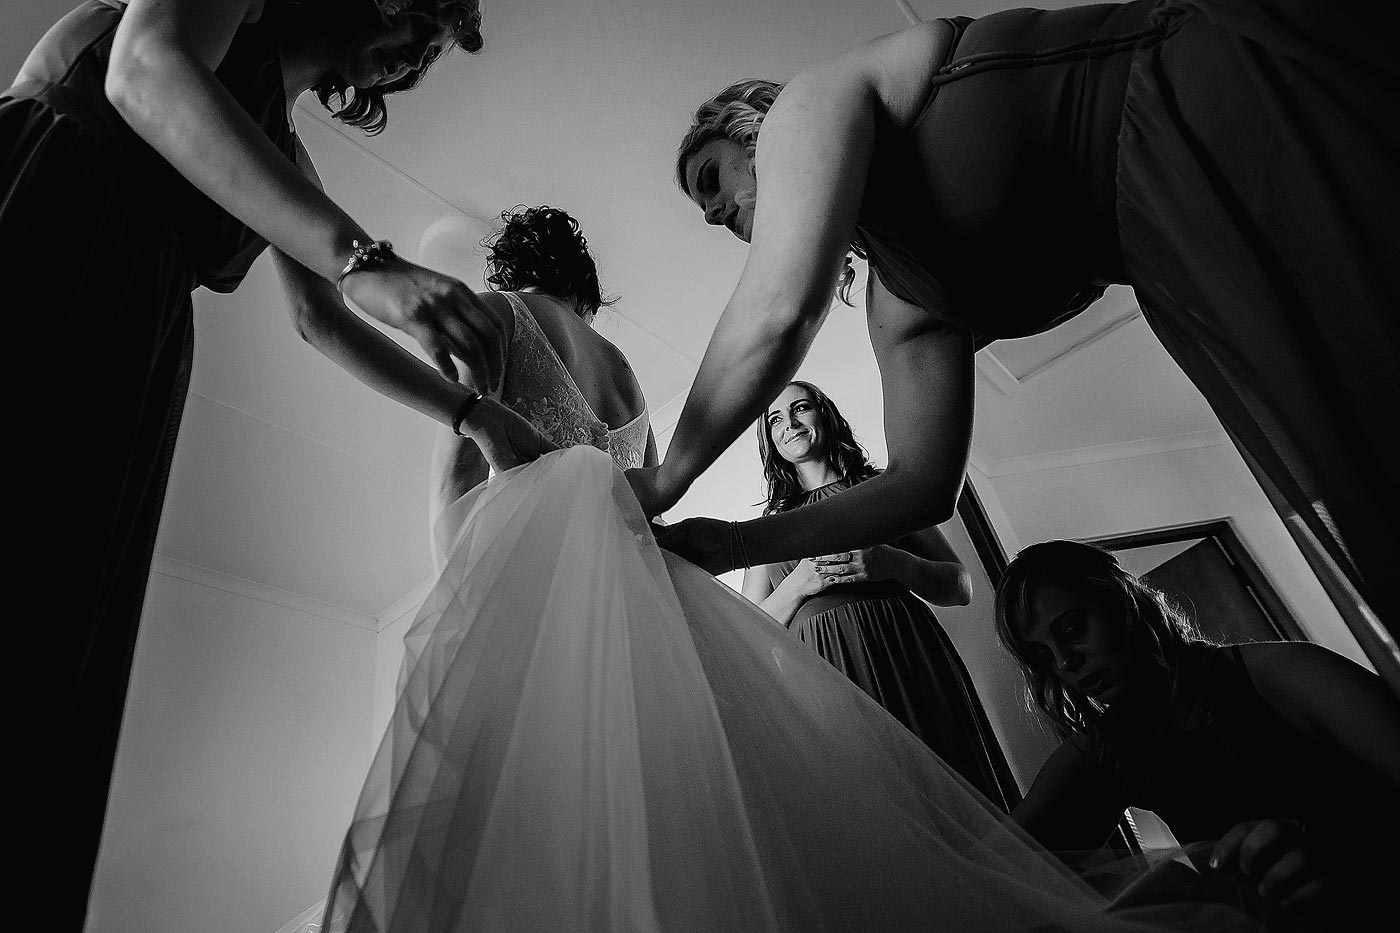 Copy of Bride getting into wedding gown before the wedding ceremony with bridesmaids